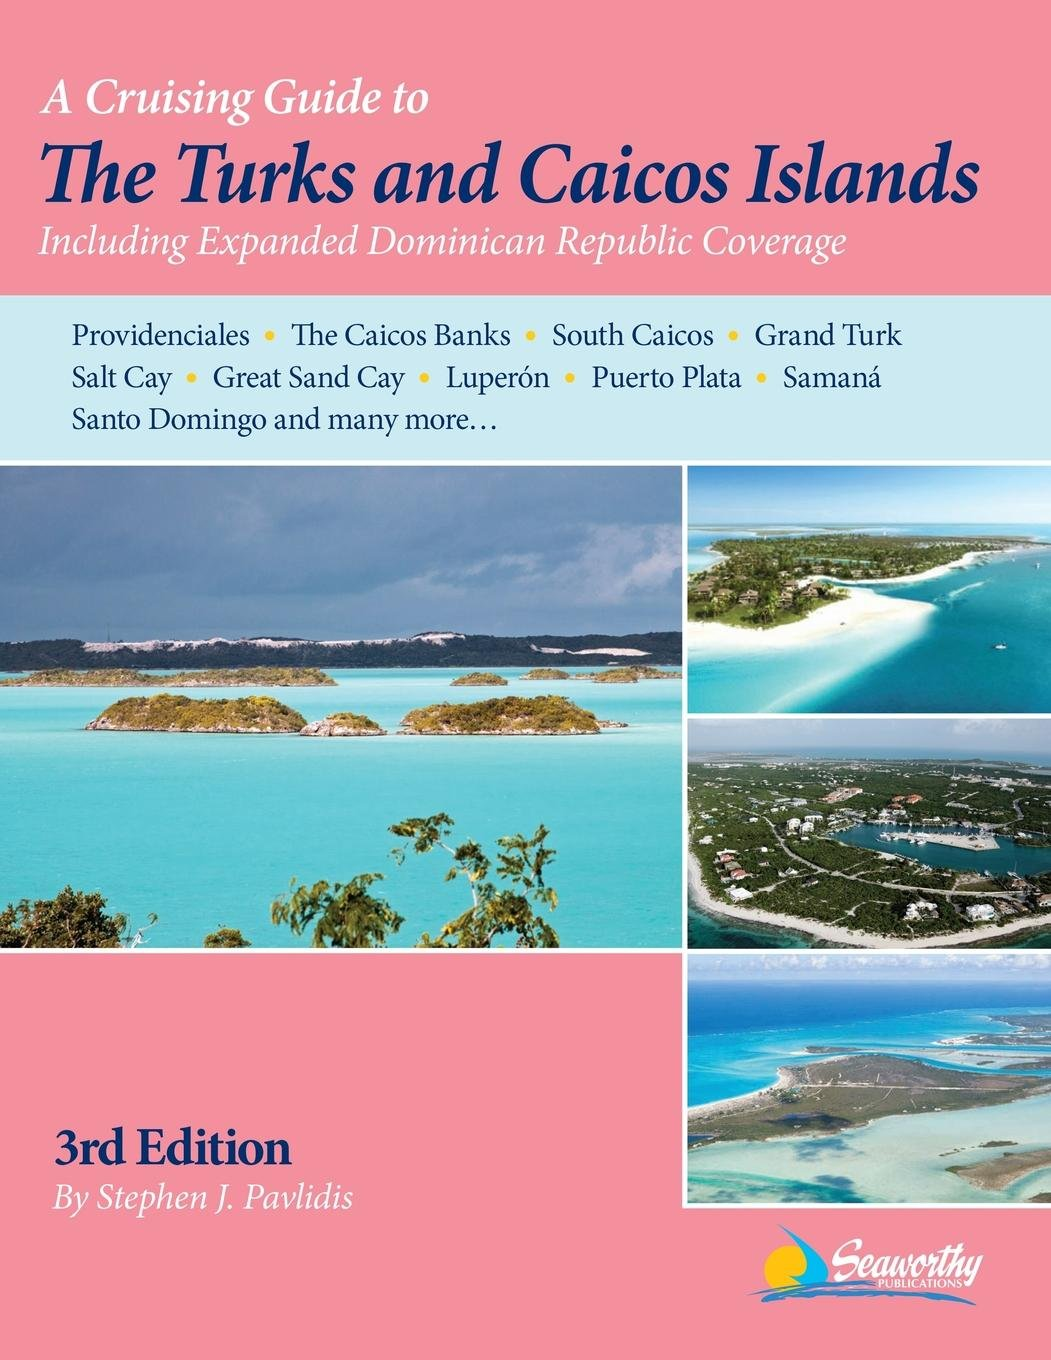 Cruising Guide to The Turks and Caicos Islands, 3rd ed: Stephen J Pavlidis:  9781892399403: Amazon.com: Books